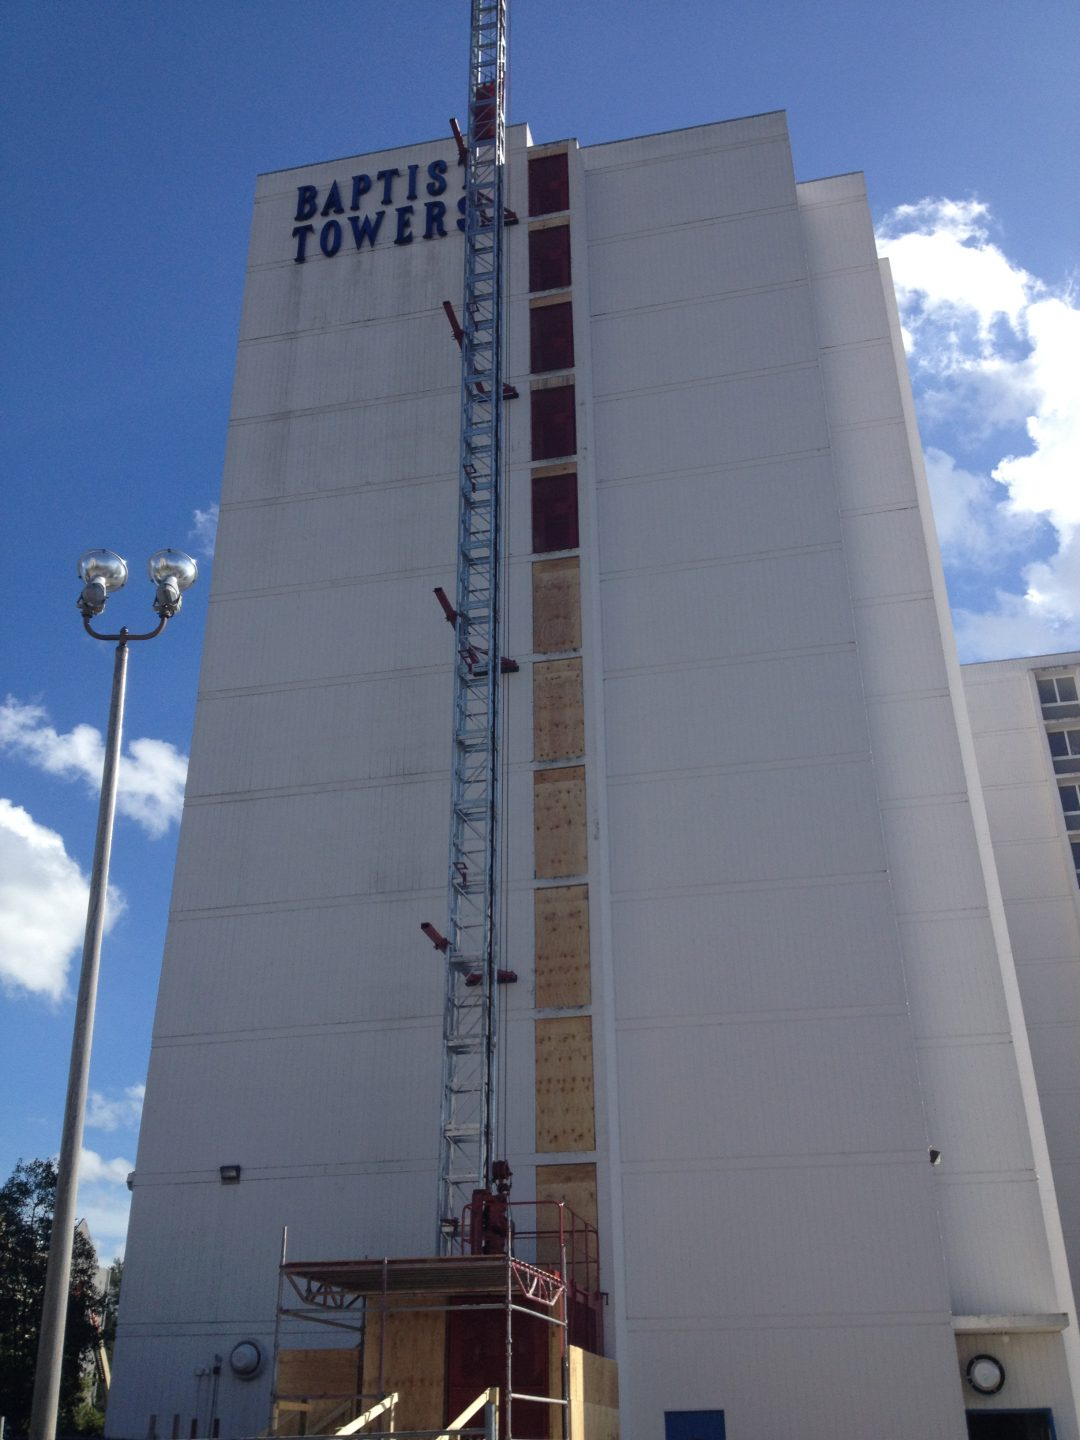 Renovation project of Baptist Tower